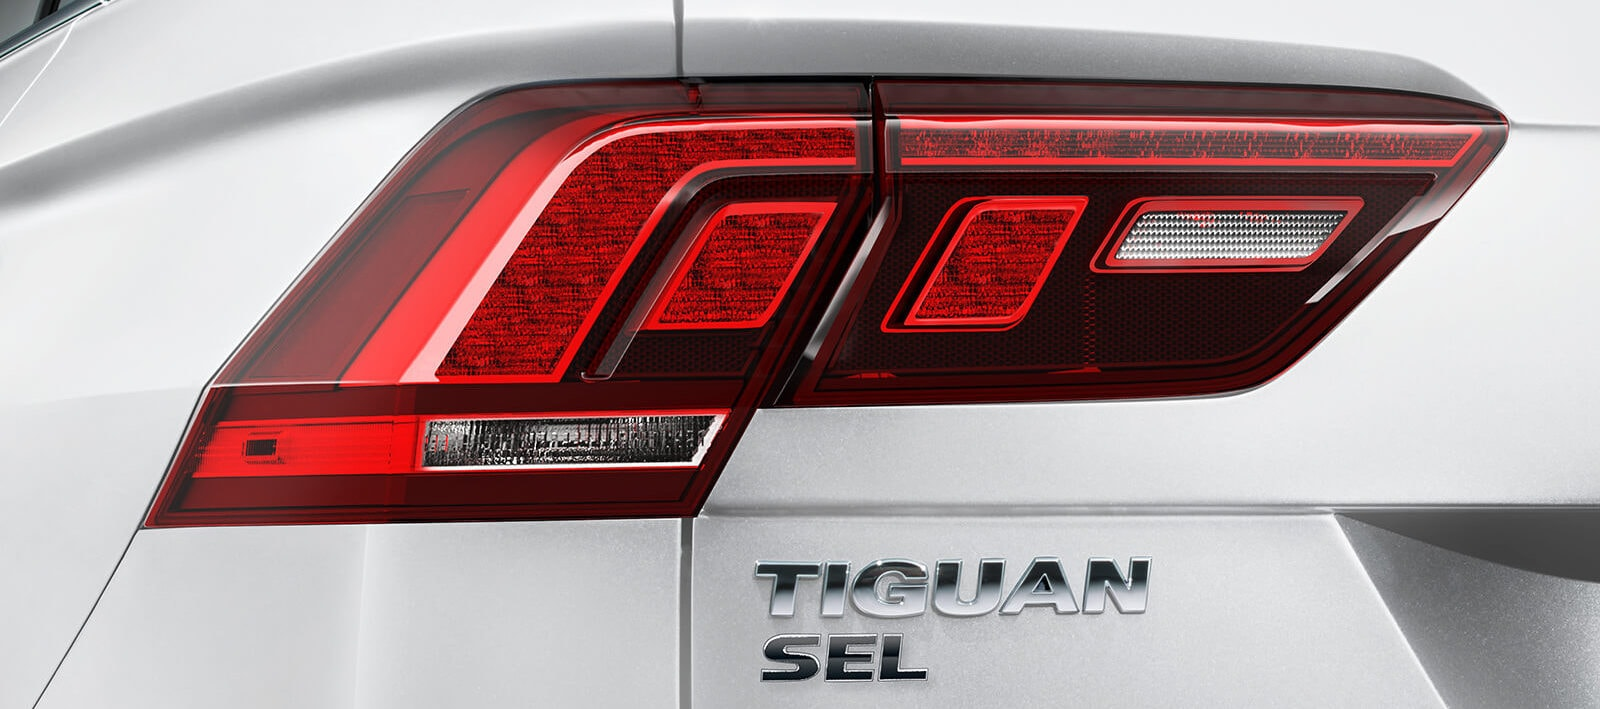 2020 Volkswagen Tiguan fuel capacity vs the competition